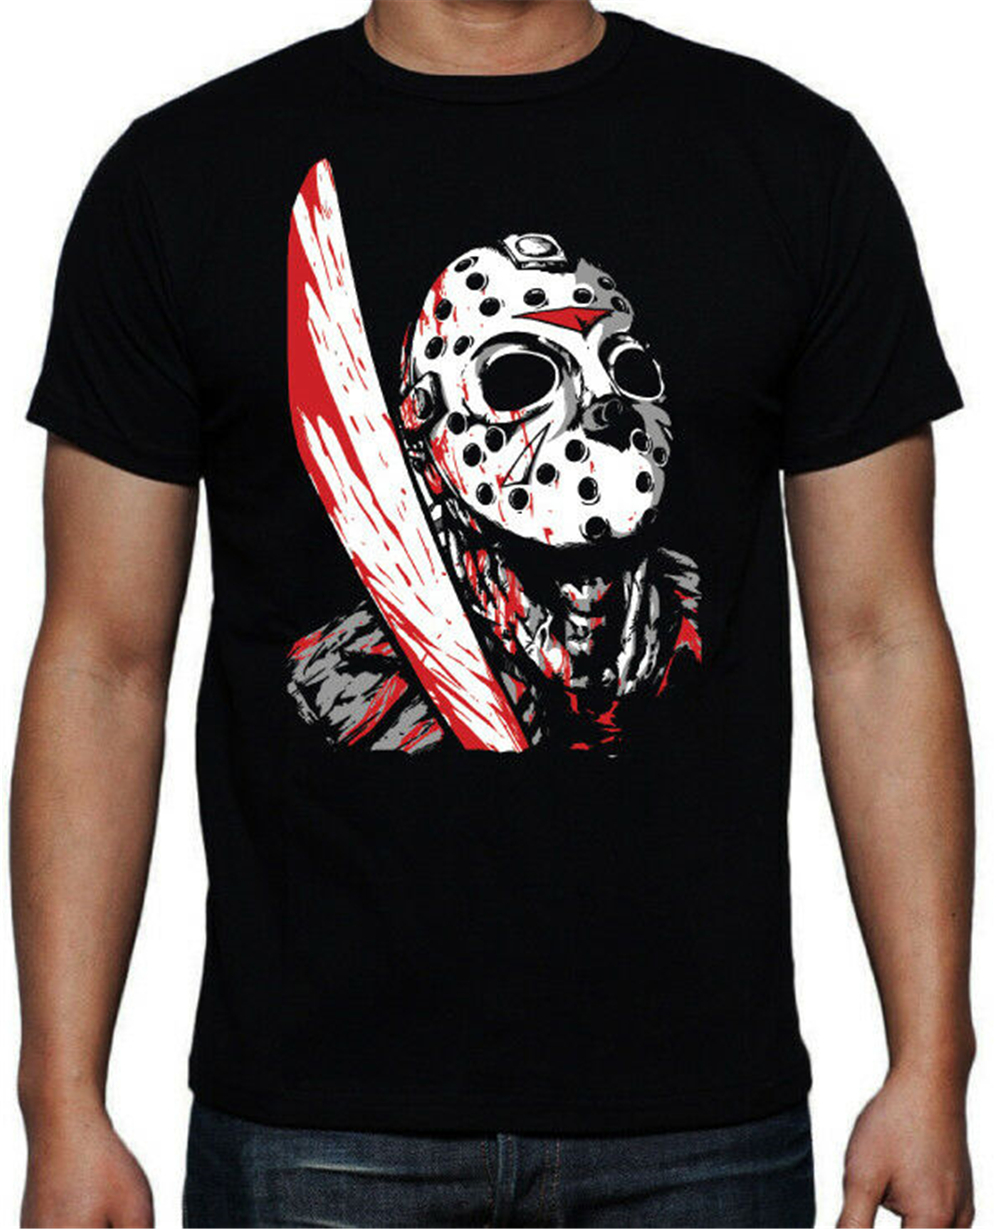 Friday The 13Th Slasher Horror Movie Jason Voorhees Mens Film Black New T-Shirt Unisex Men Women Tee Shirt image